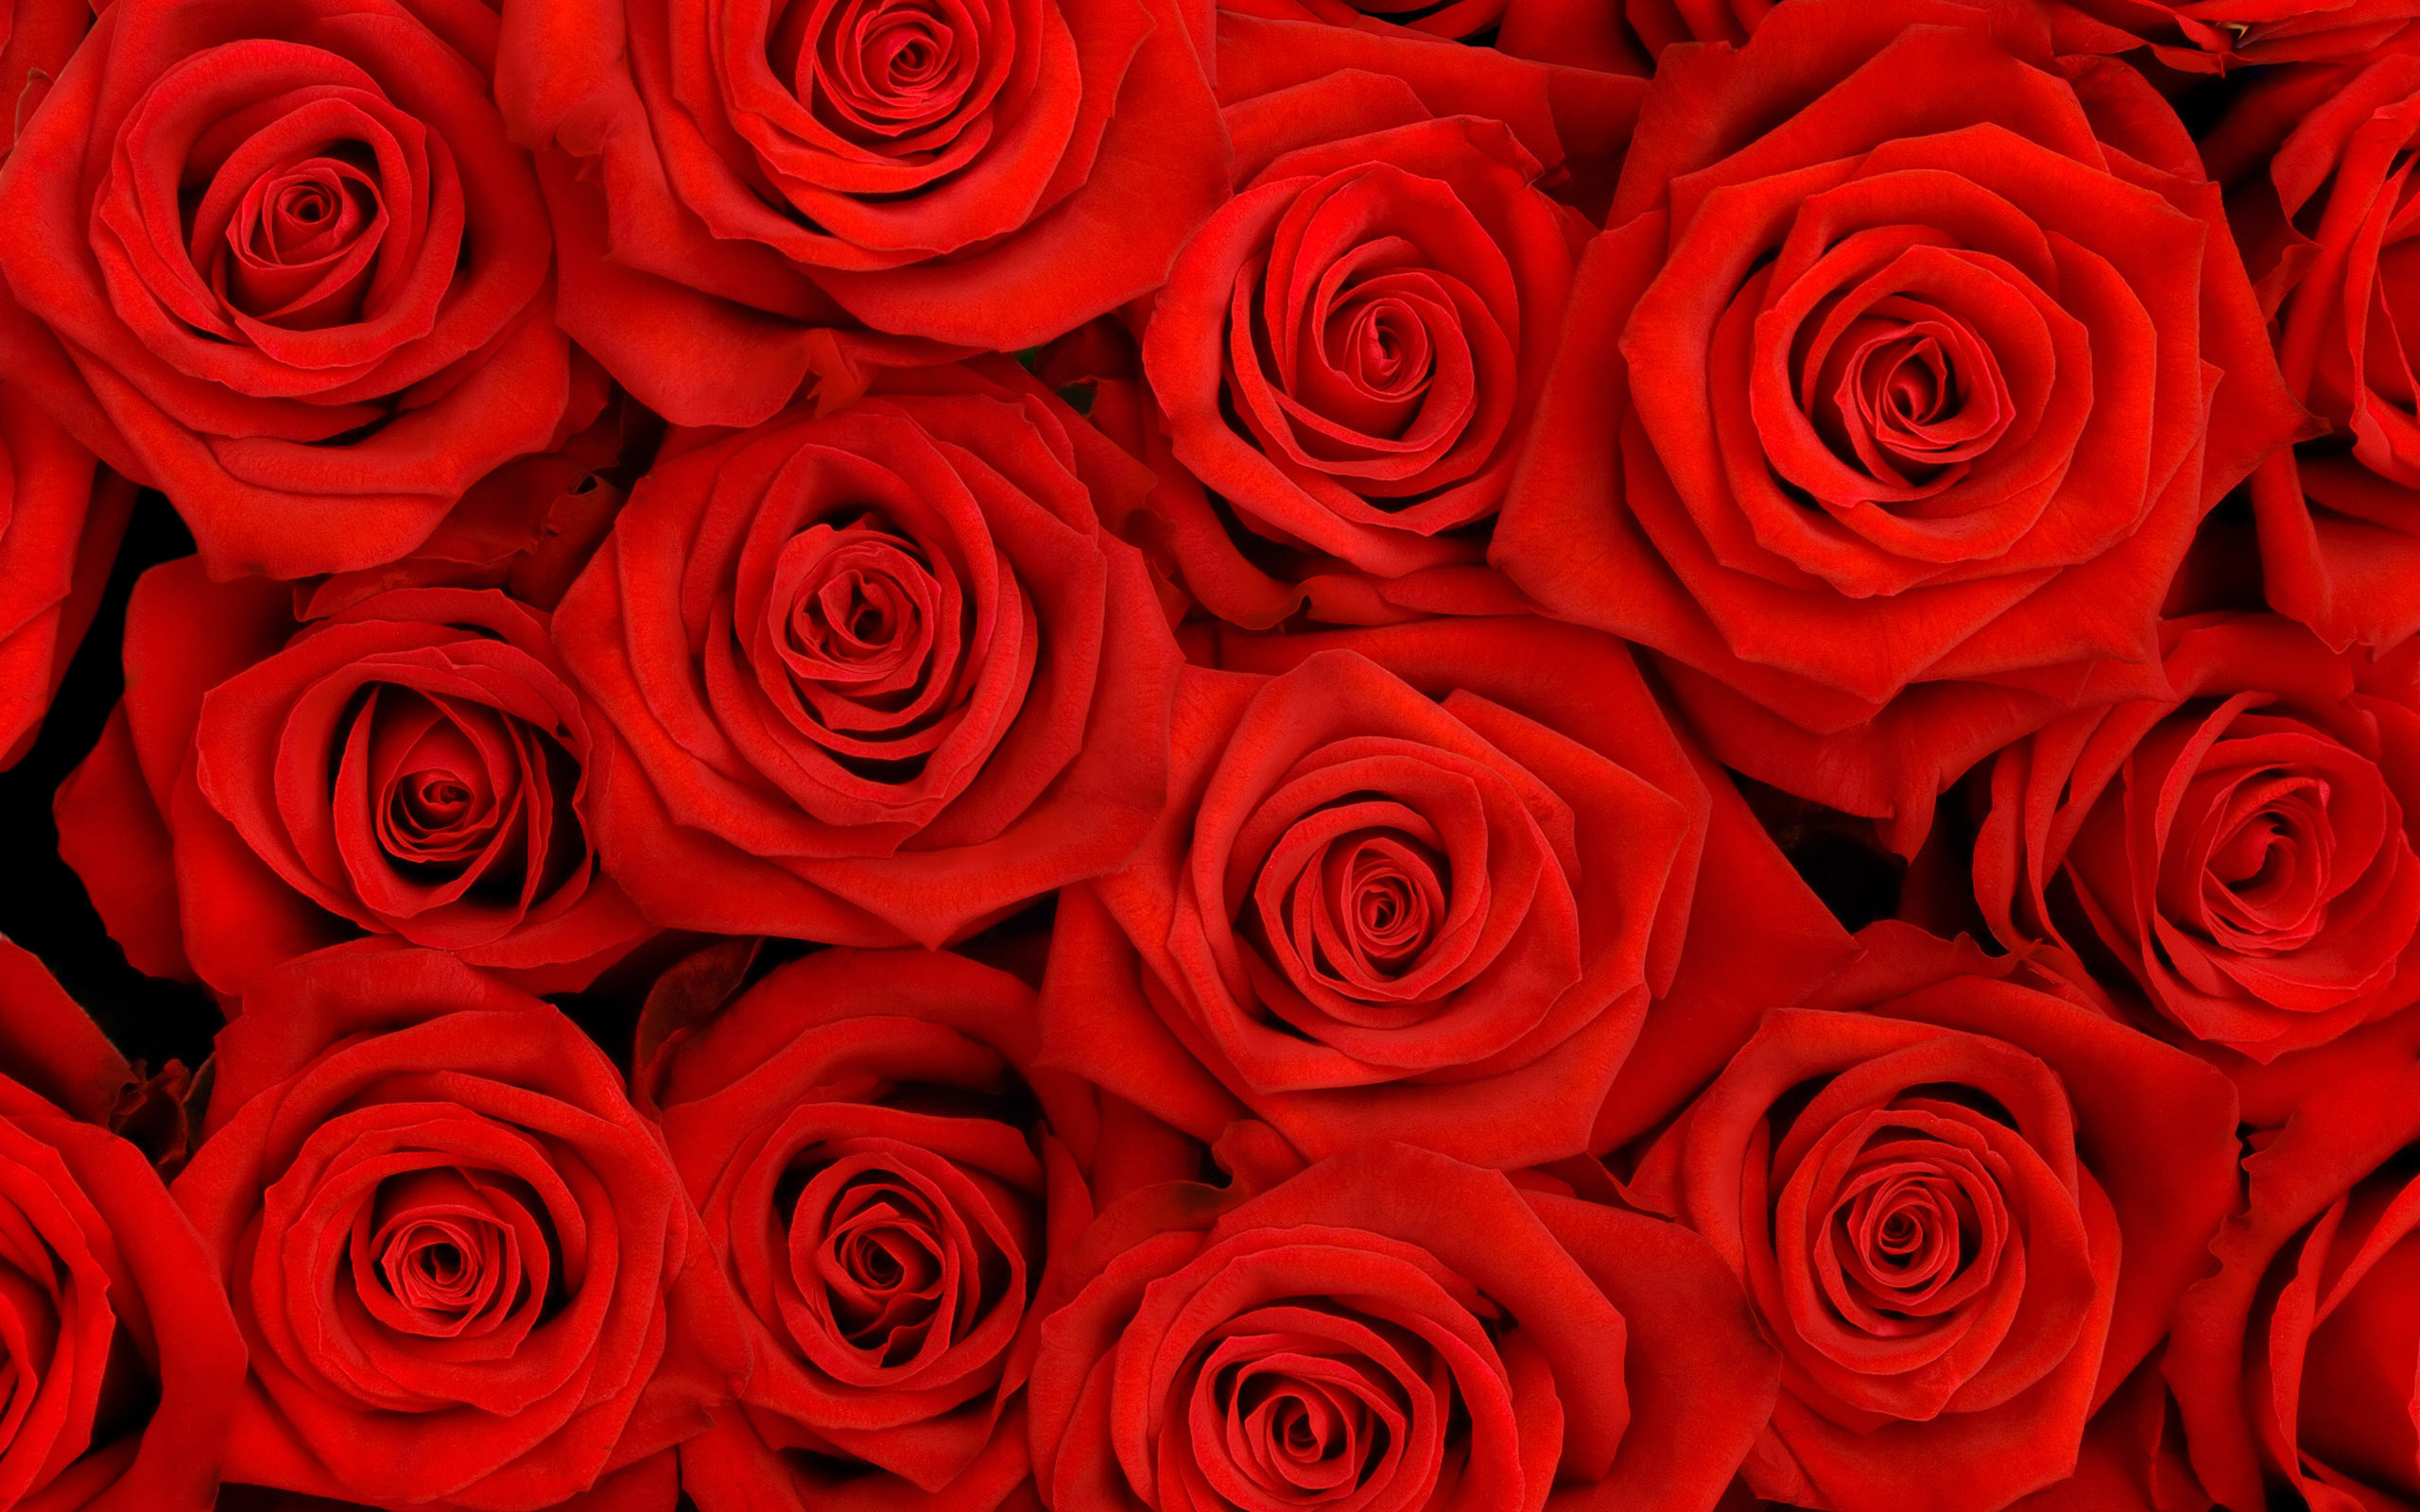 Cool Rose Wallpaper 45384 2560x1600 px